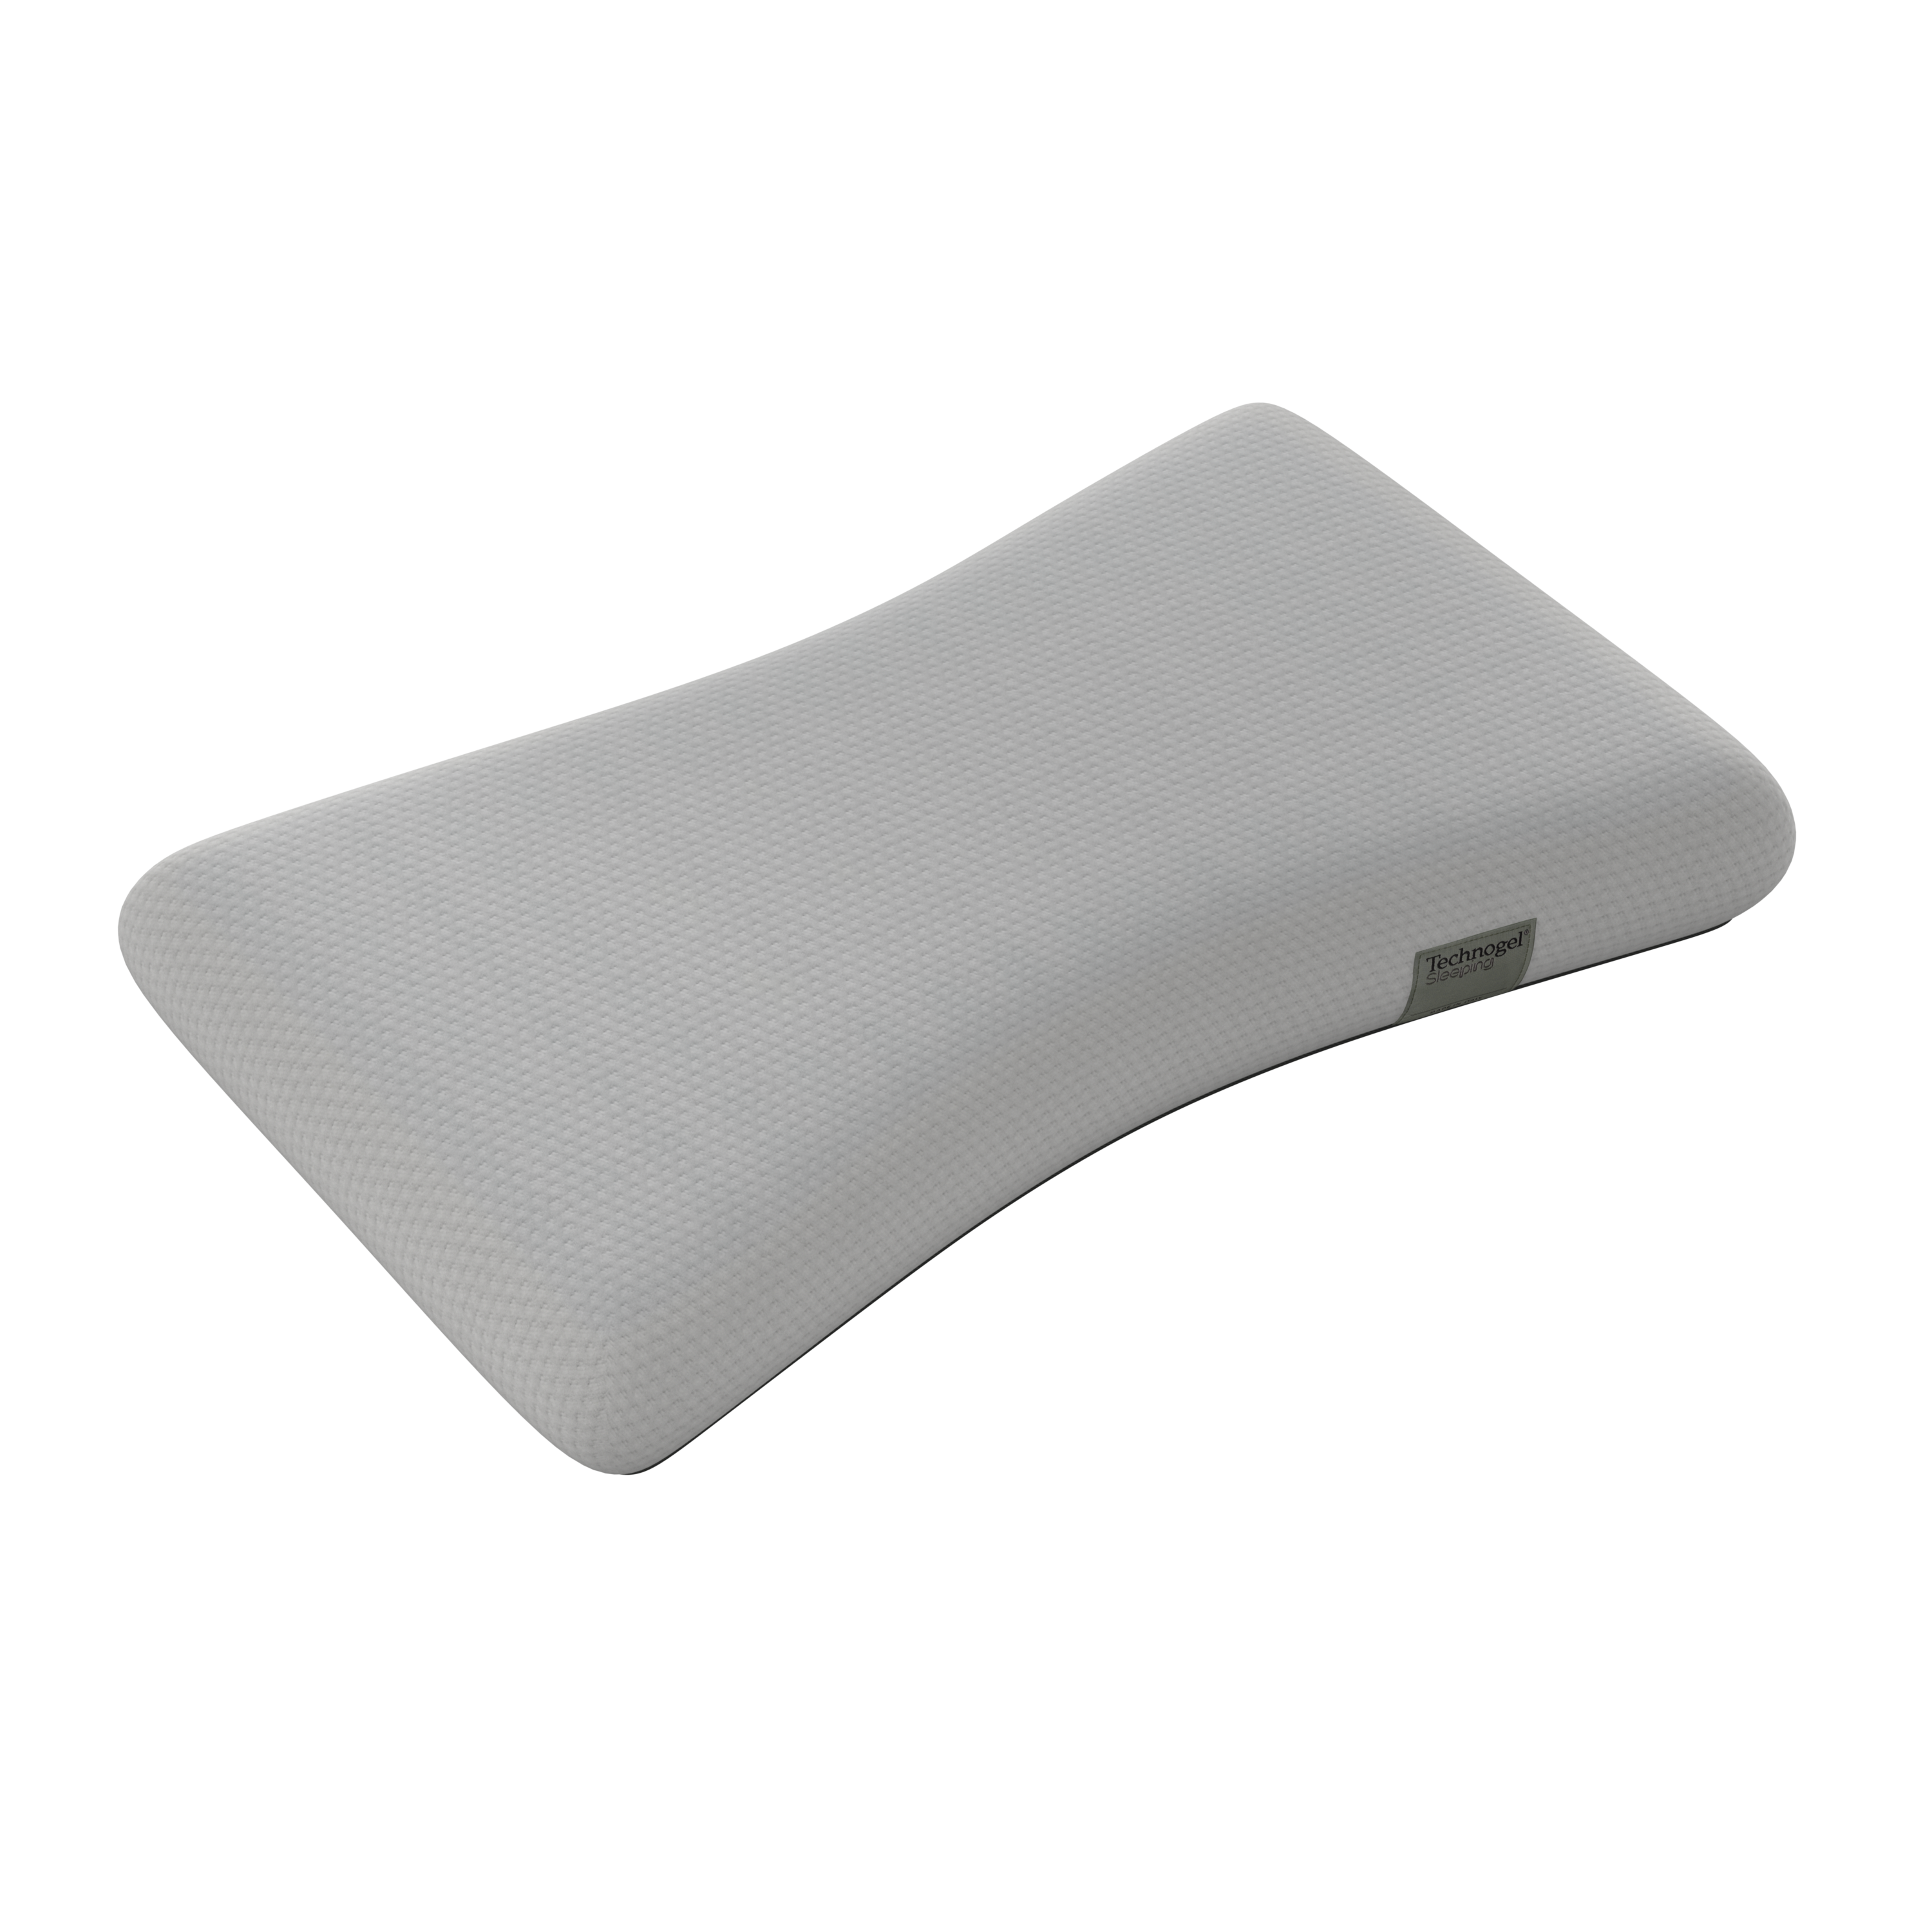 Technogel Side Pillow   Specially Designed To Provide Cooling Support For  Side Sleeping